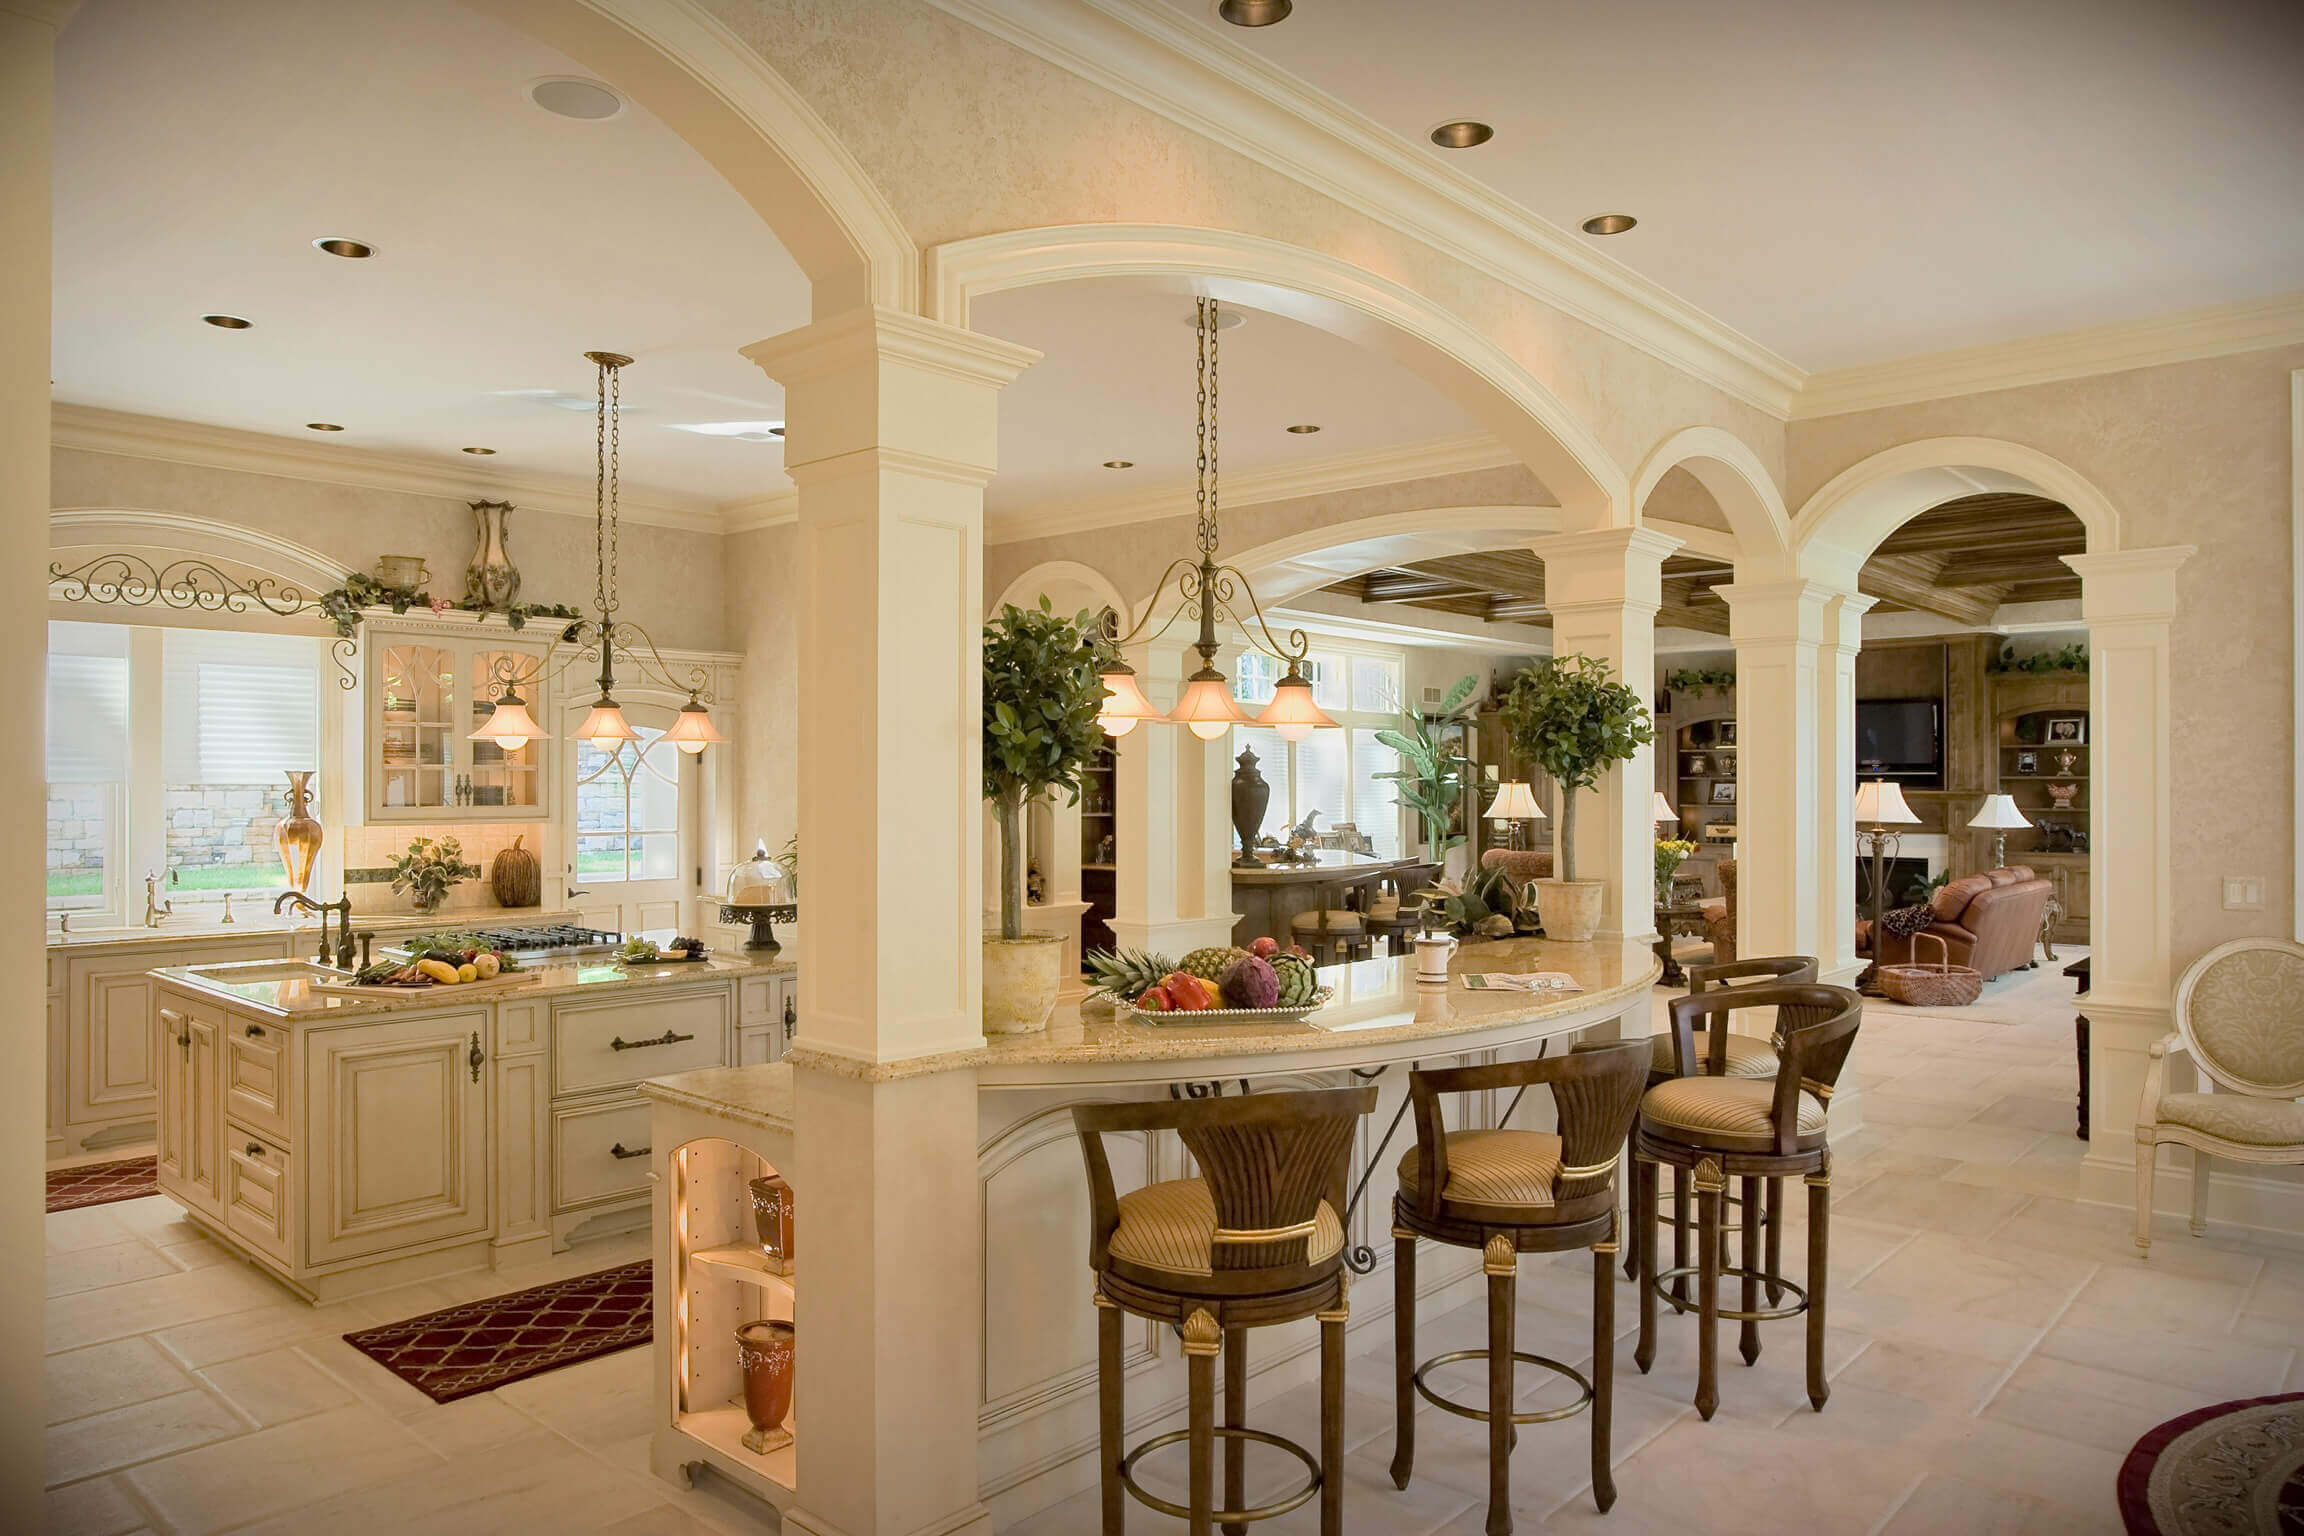 This luxury kitchen design with island is set around a centrally positioned centrepiece. The decorative pattern right in the middle of the room brings eyes to the tiled floor. The white and cream color scheme offers a sense of splendor and luxury